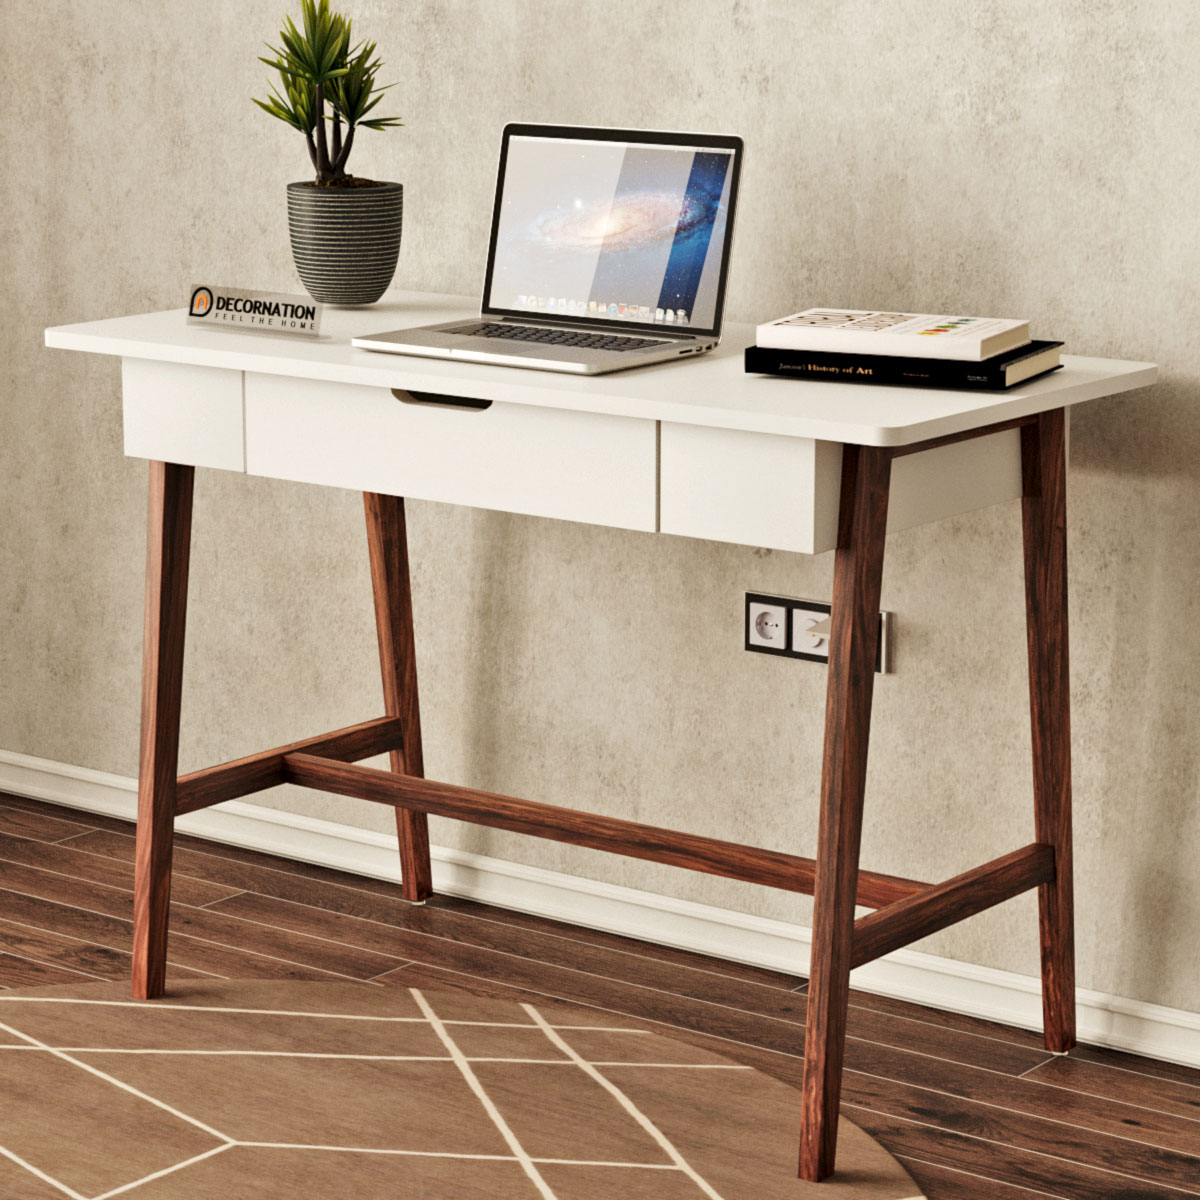 - Decornation Zane Wooden Computer & Study Table For Home Office